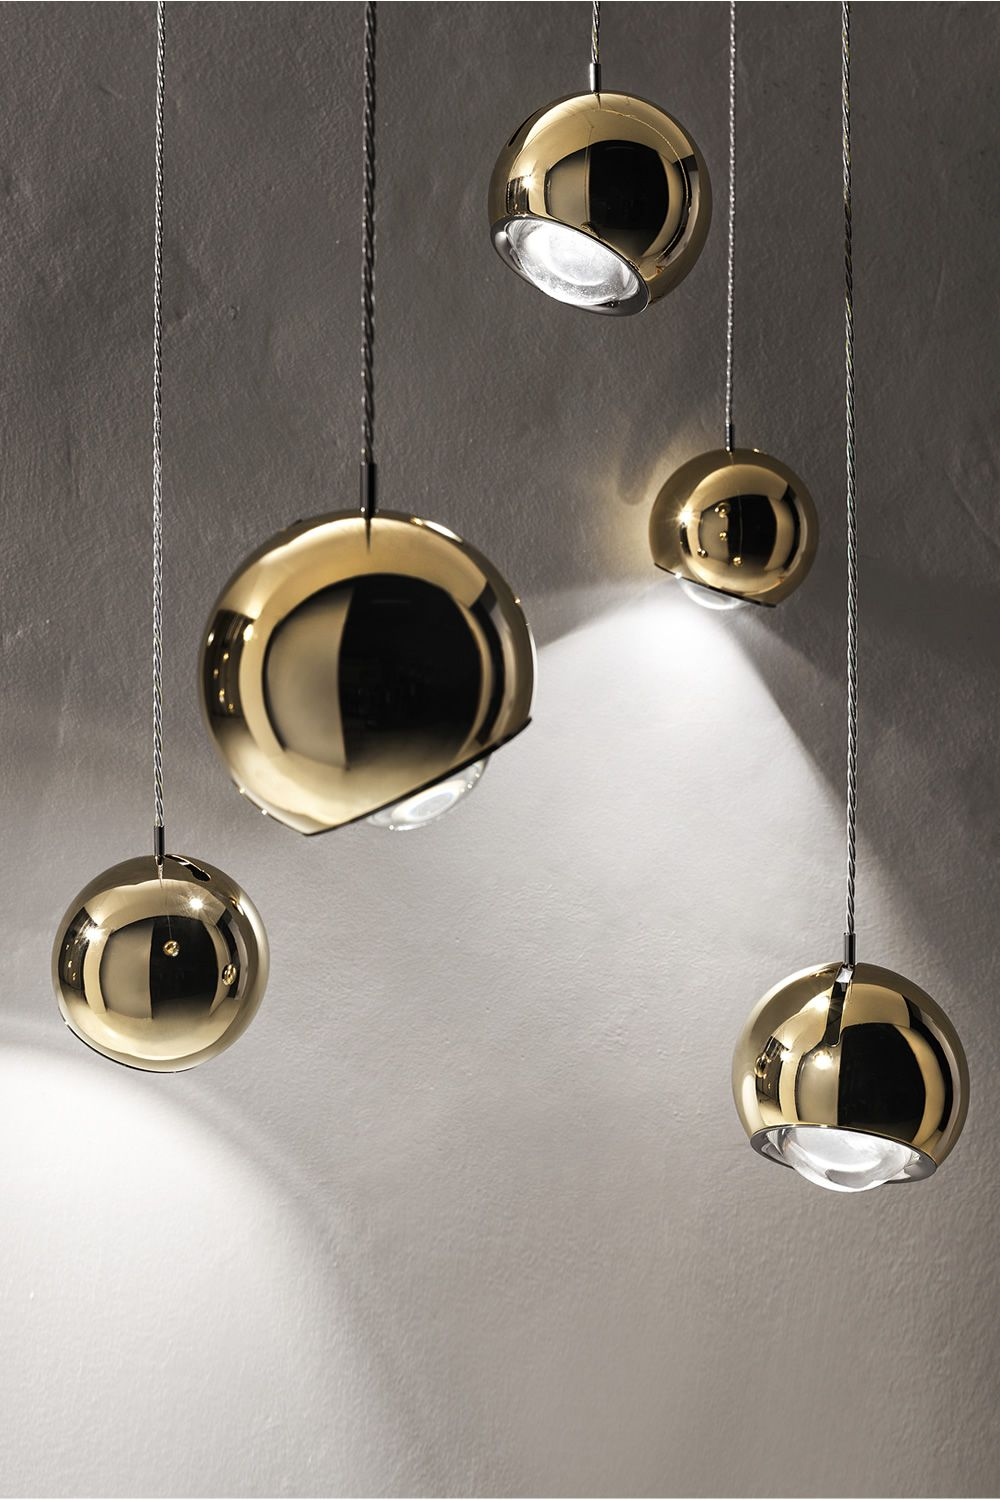 Design pendant lamp, in gold painted metal